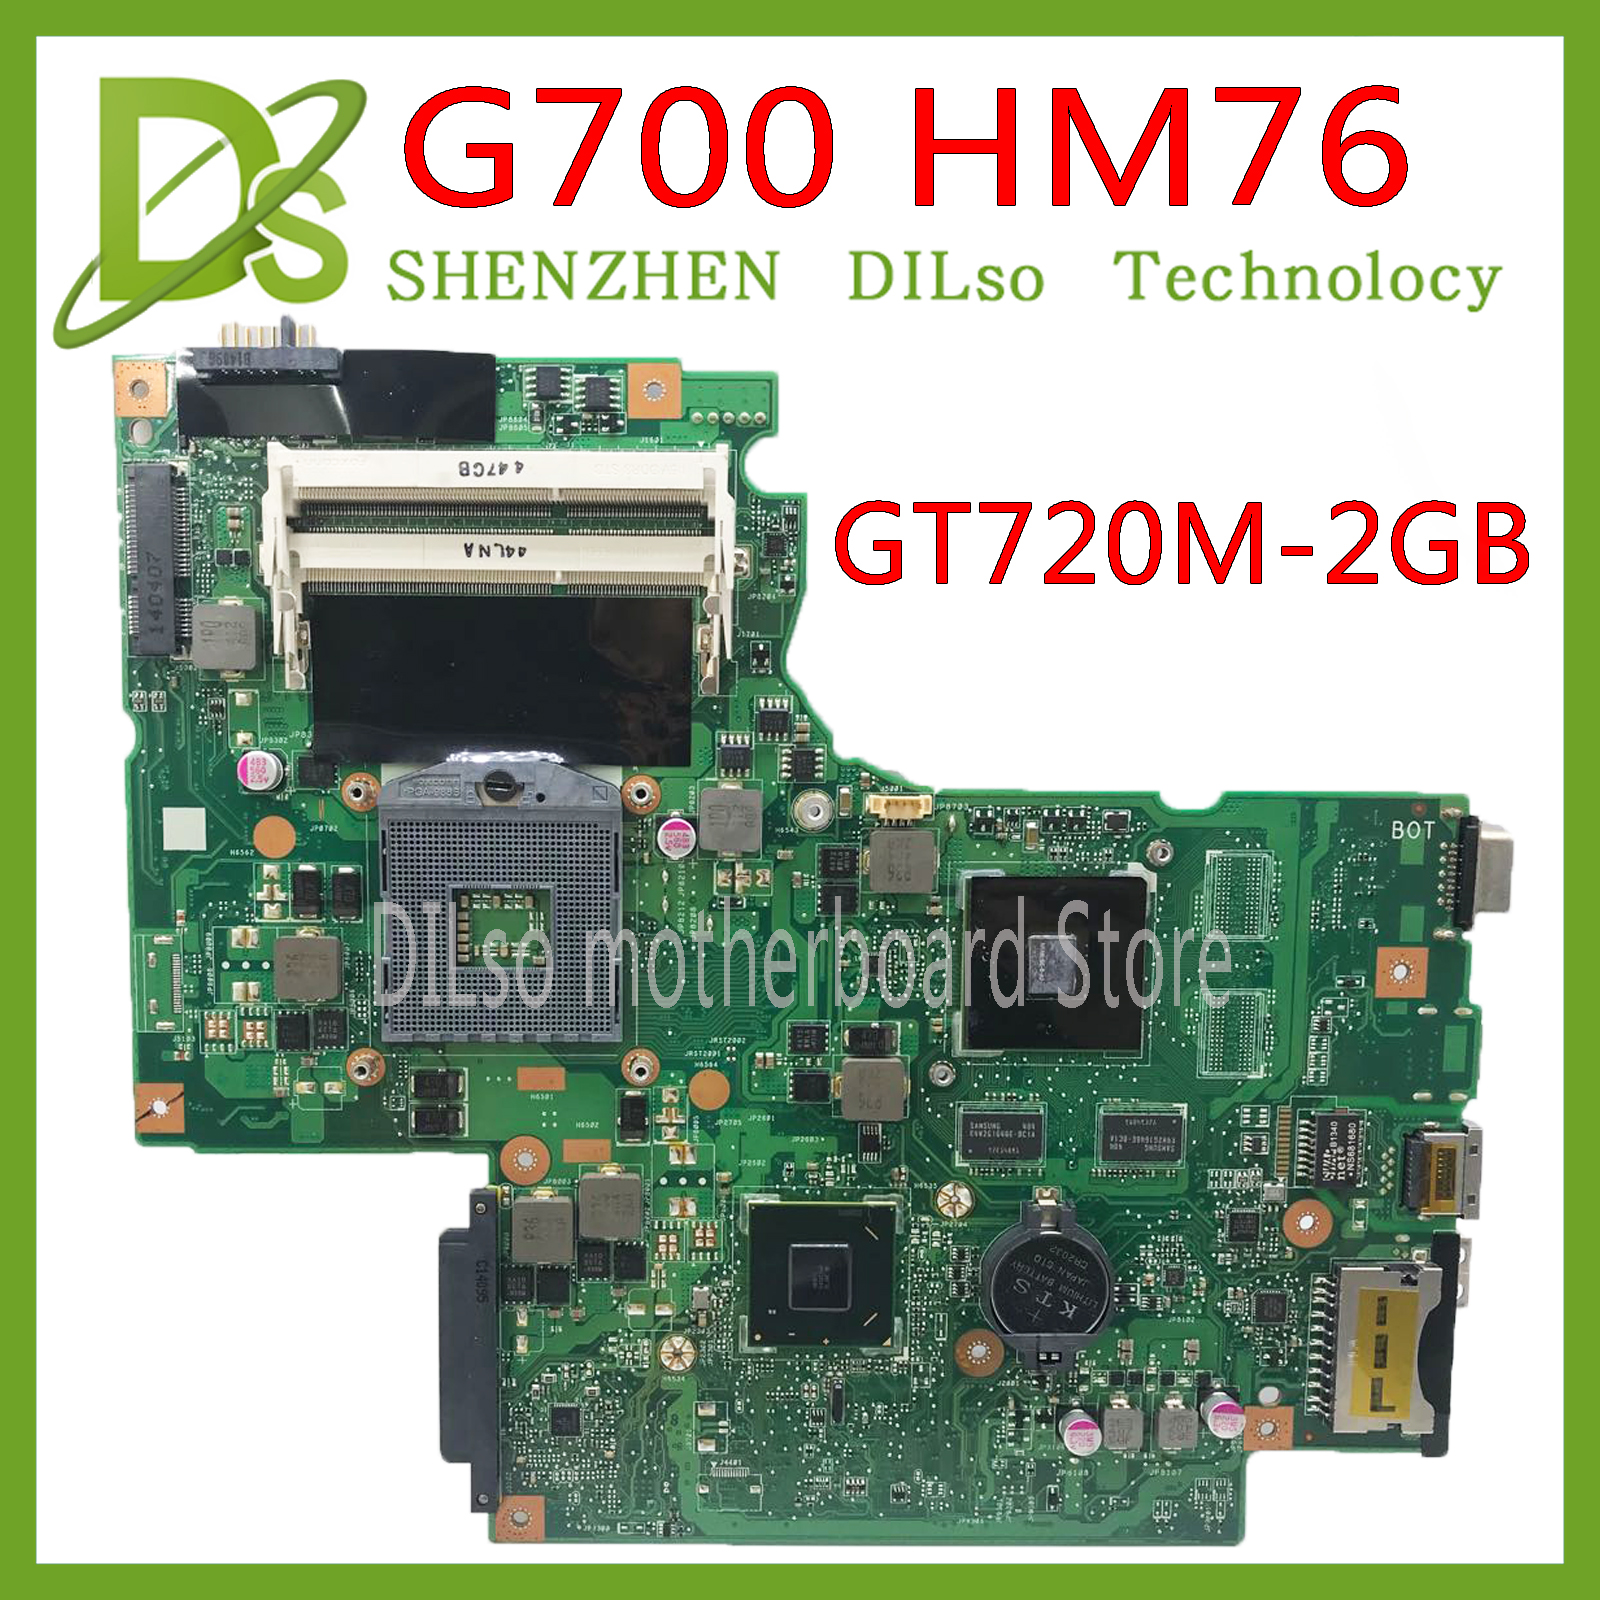 KEFU G700 For Lenovo G700 Laptop Motherboard BAMBI Mainboard With Gt720 GPU HM76 11SN0B5M11 11S90003042 Original Mainboard